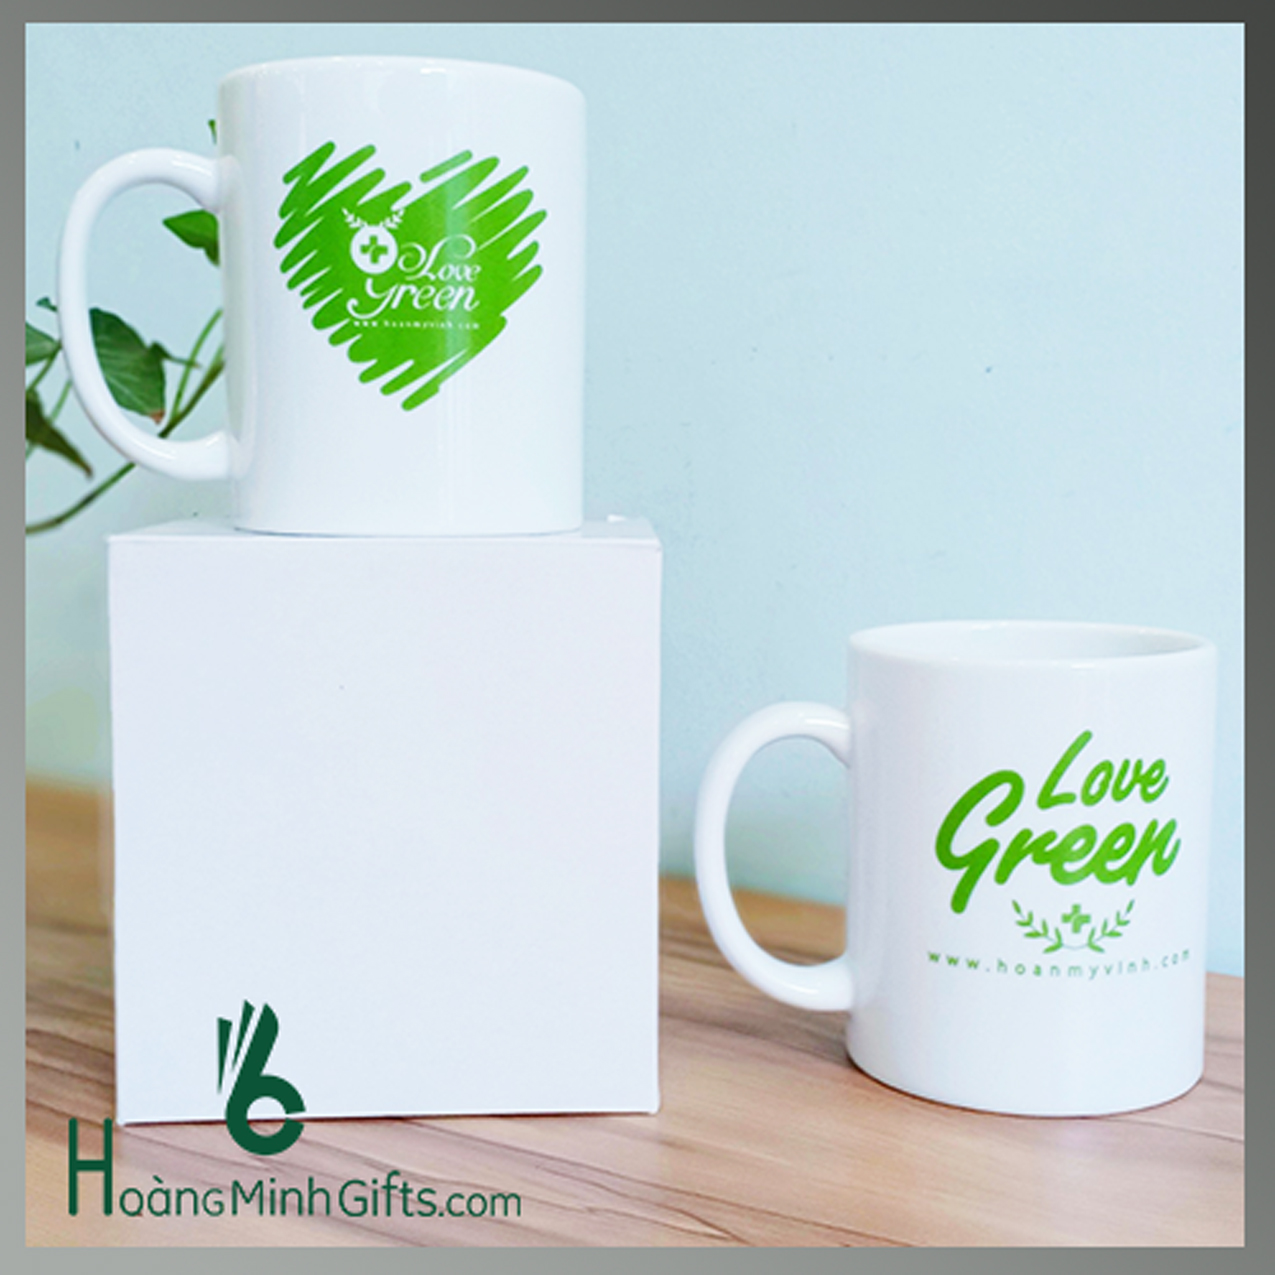 coc-su-minh-long-in-logo-kh-love-green